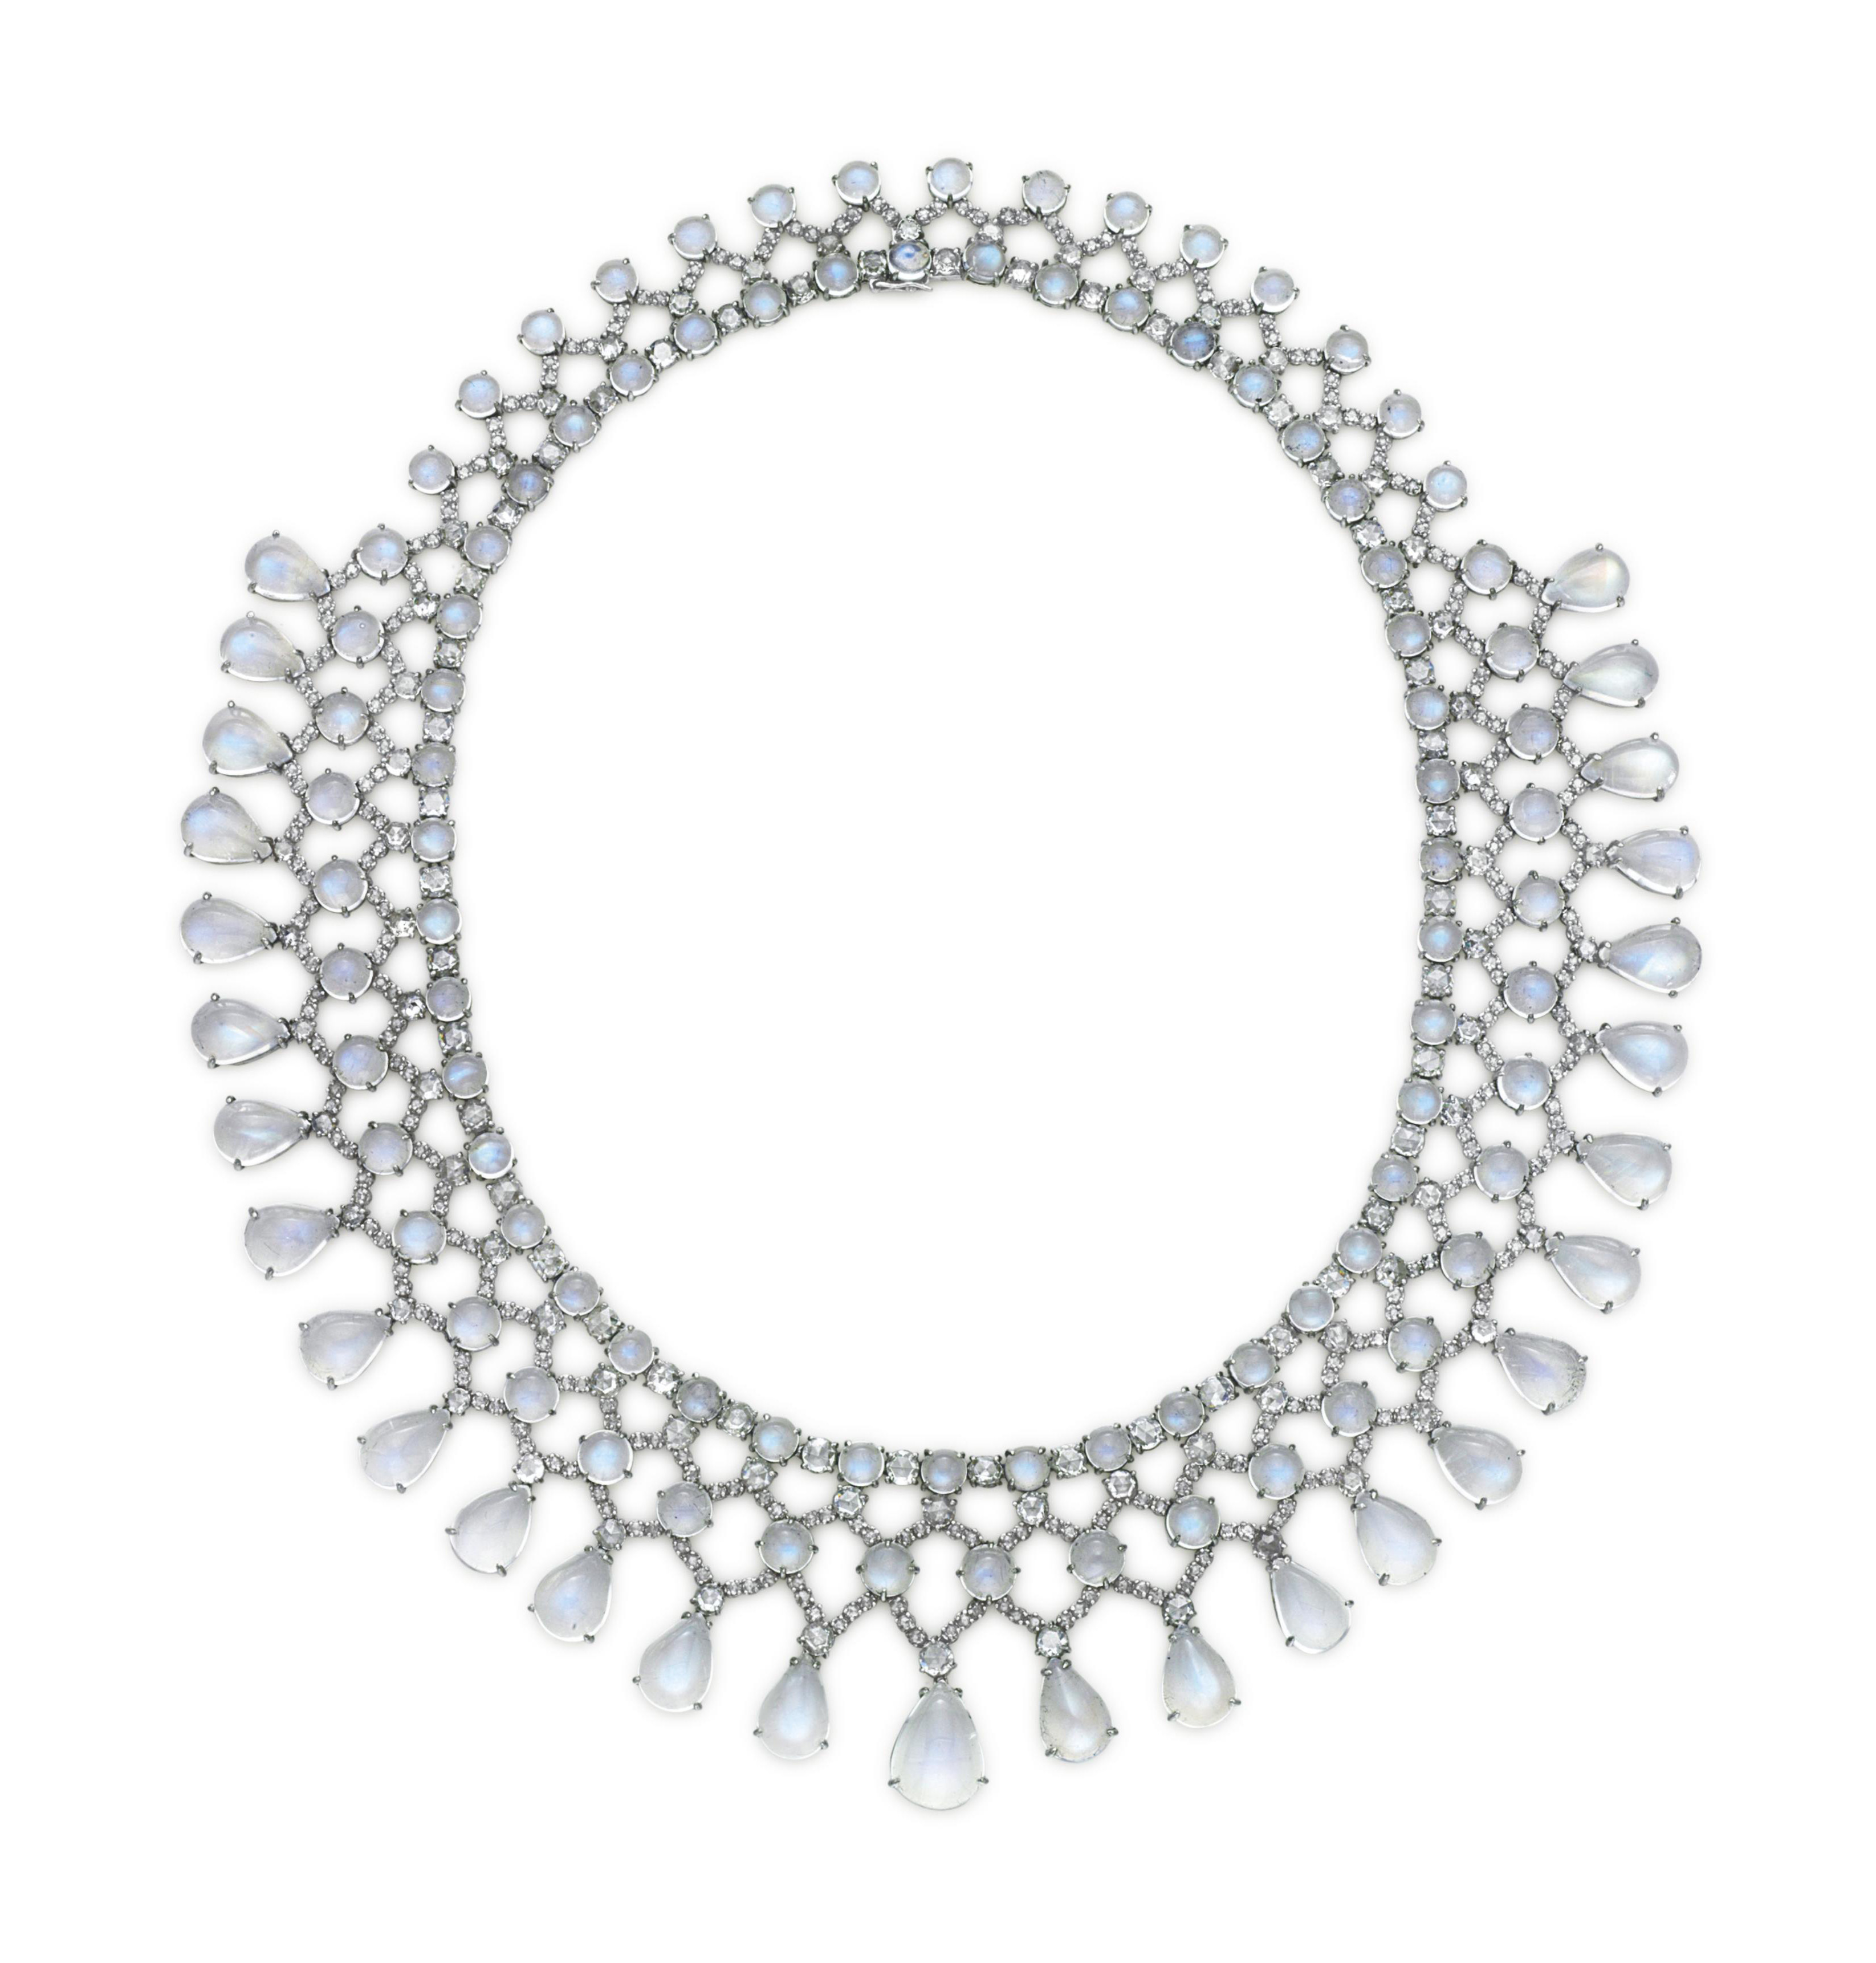 A MOONSTONE AND DIAMOND NECKLA